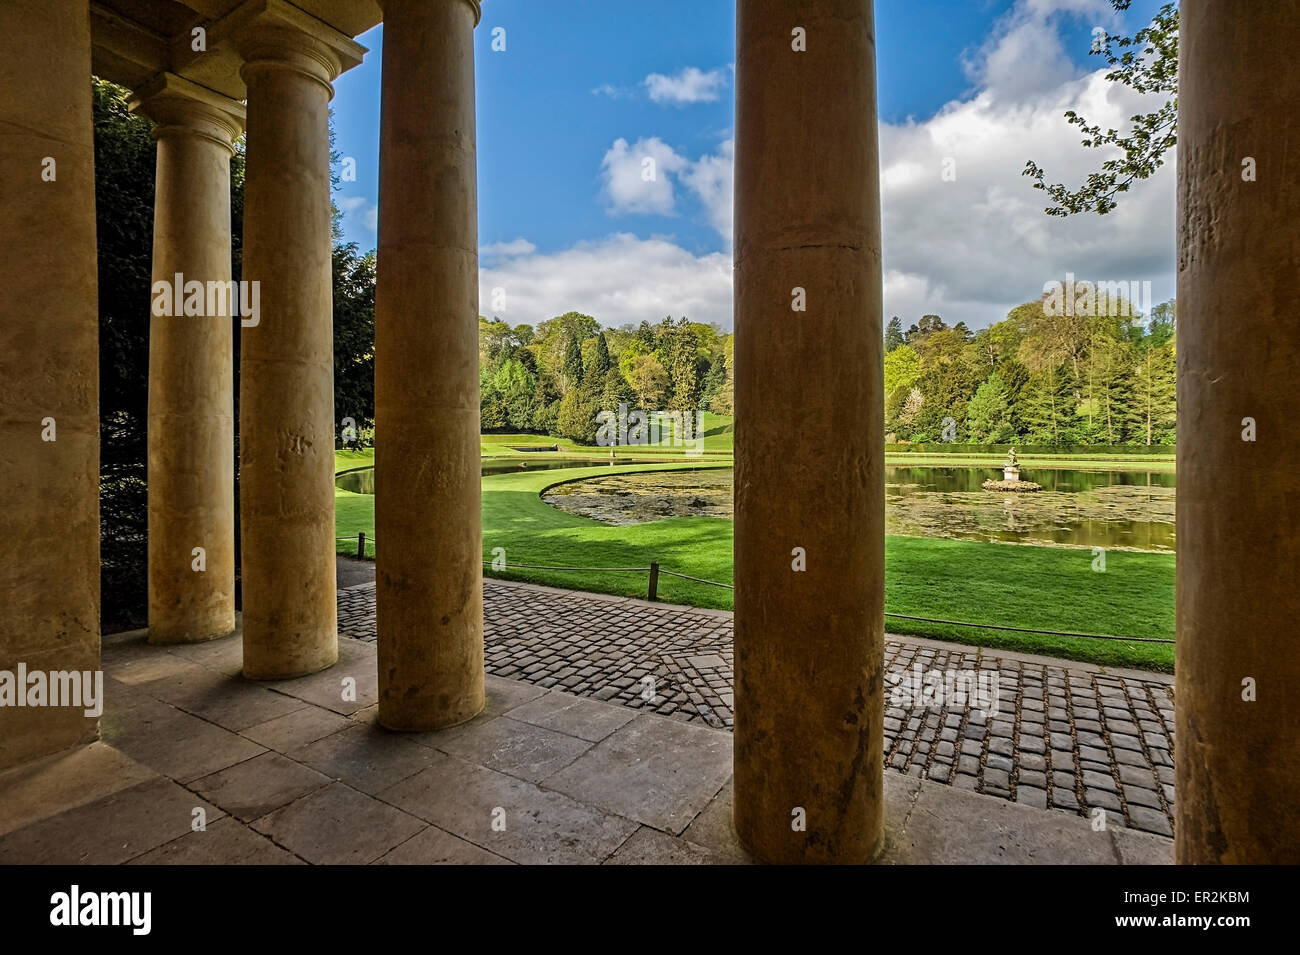 Temple of Piety, Studley Royal landscape gardens, UNESCO World Heritage Site, near Ripon, North Yorkshire, England, - Stock Image